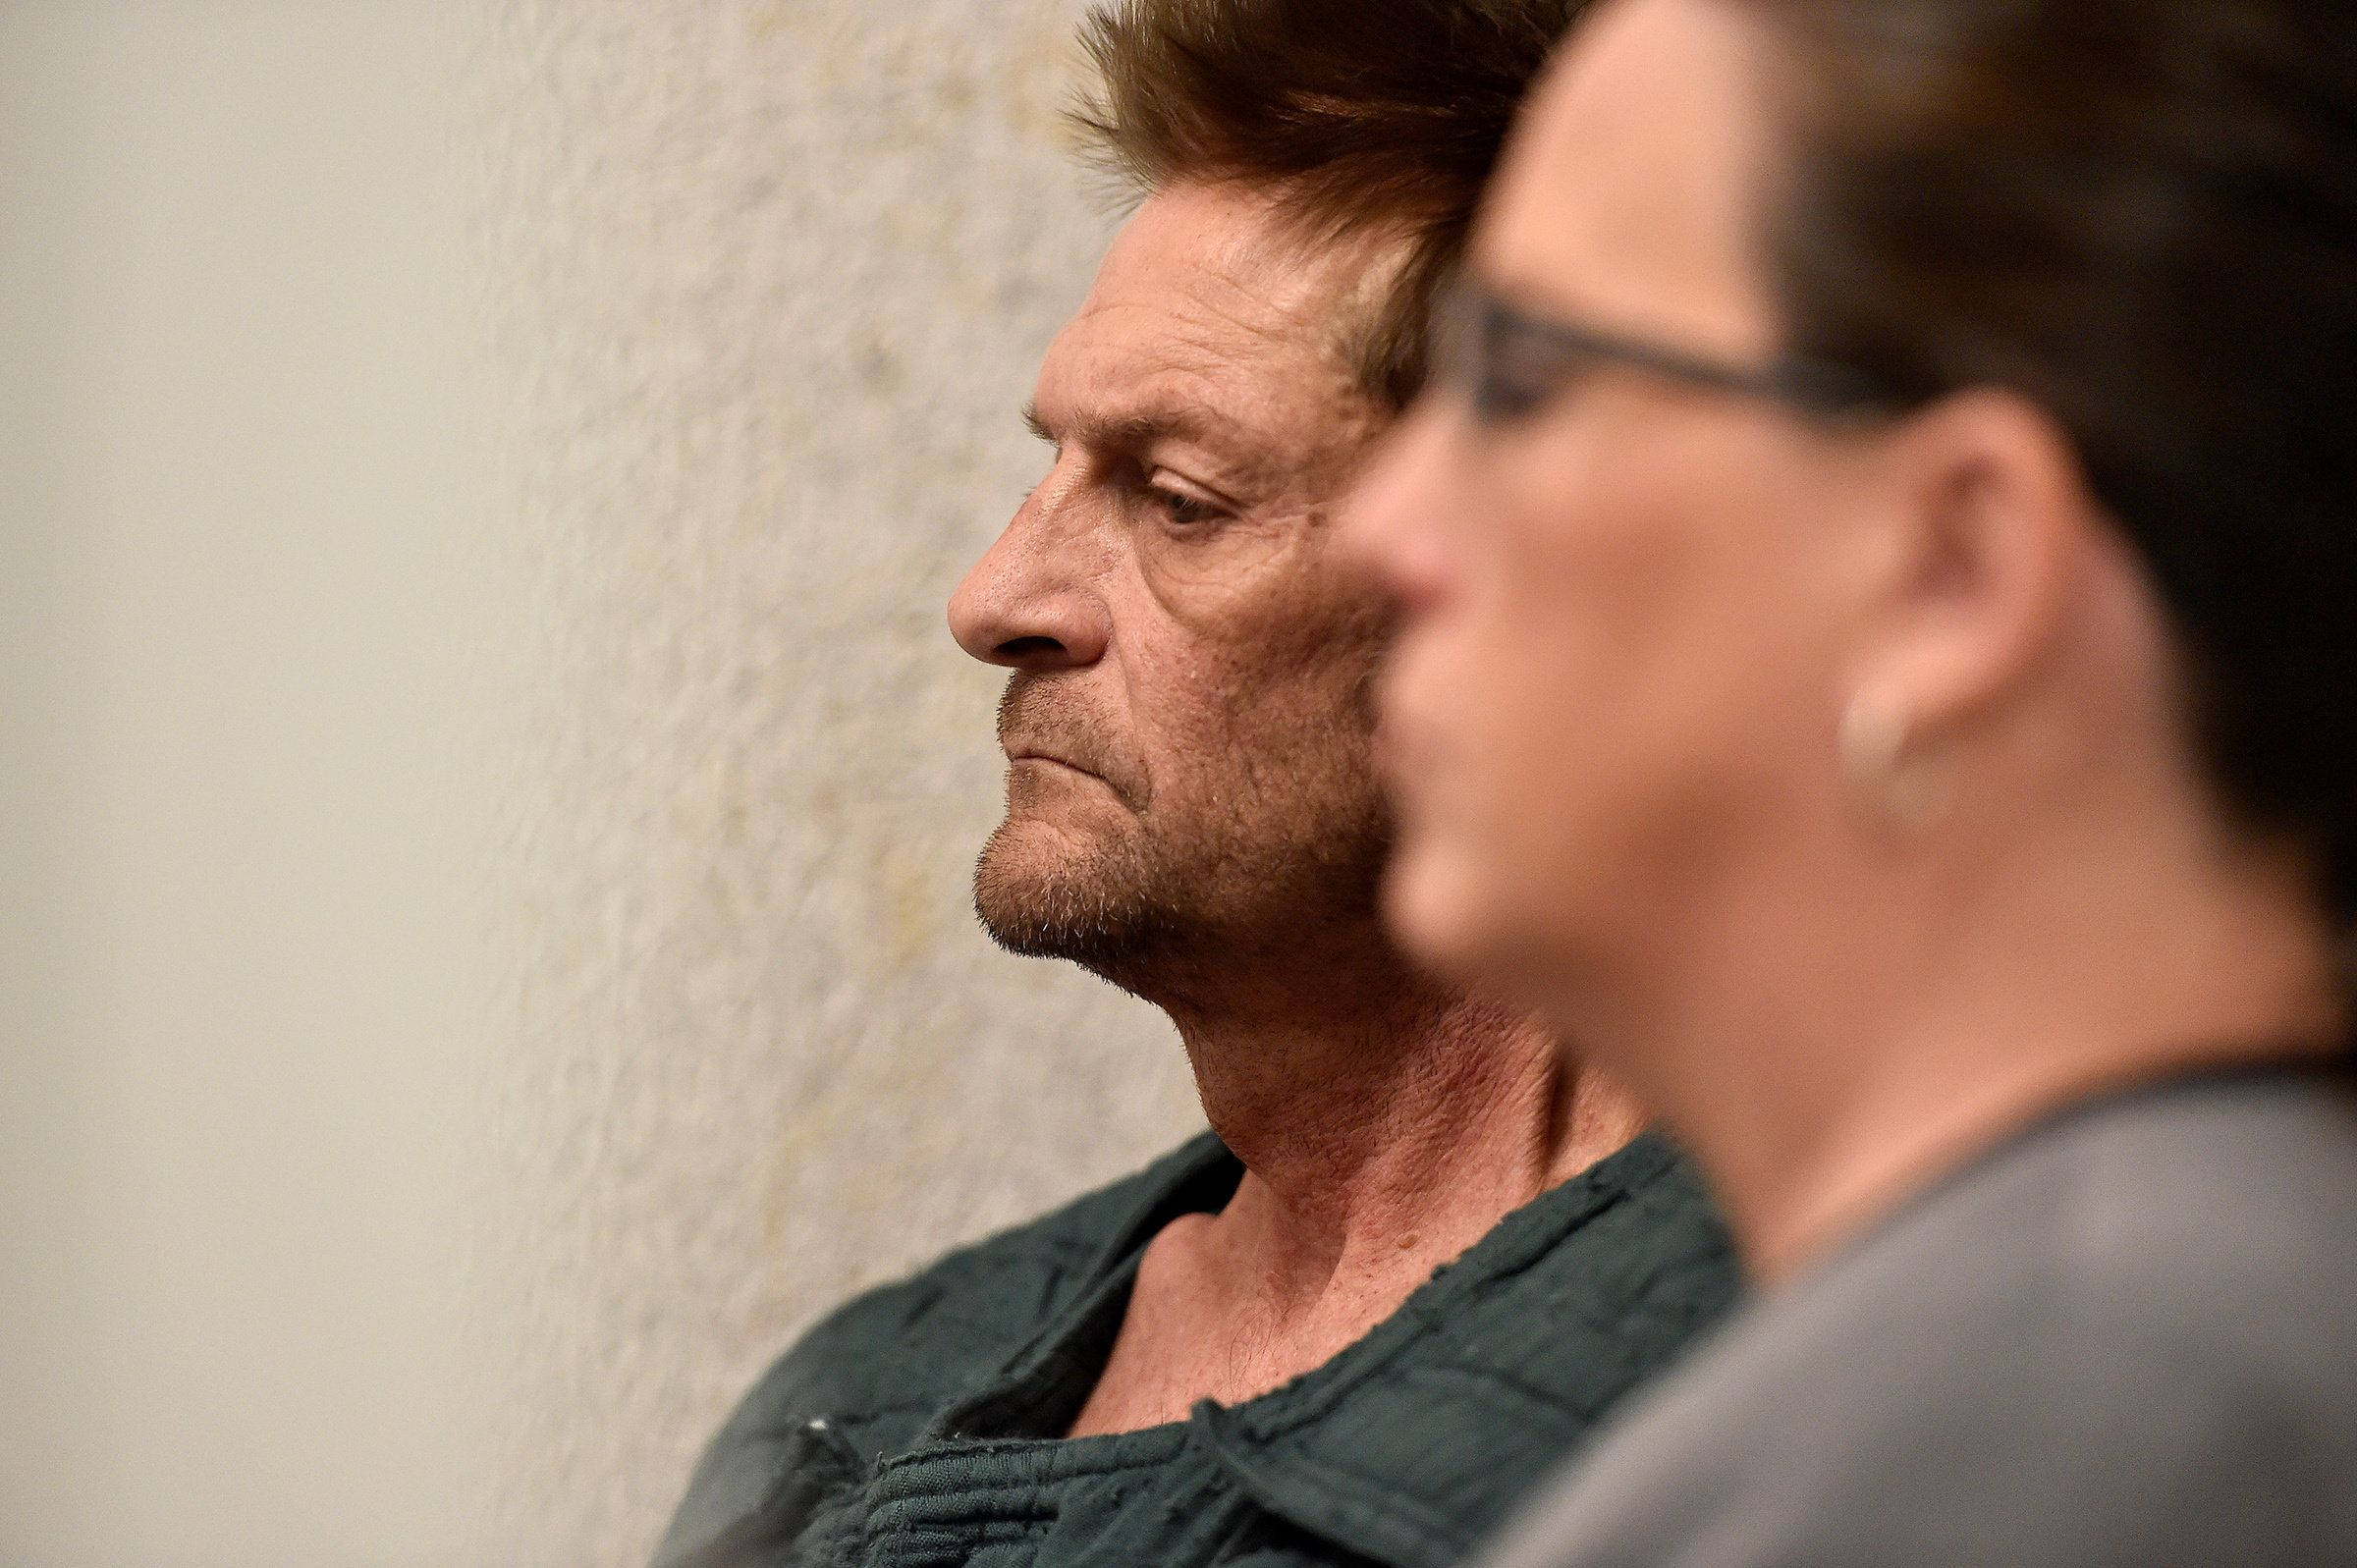 Adam Purinton, 51, accused of killing Srinivas Kuchibhotla, 32, and wounding Alok Madasani, 32, as well as an American who tried to intervene, appears with his public defender Michelle R. Durrett (R) via video conference from jail during his initial court appearance in Olathe, Kansas, U.S., February 27, 2017.   REUTERS/Jill Toyoshiba/The Kansas City Star/Pool